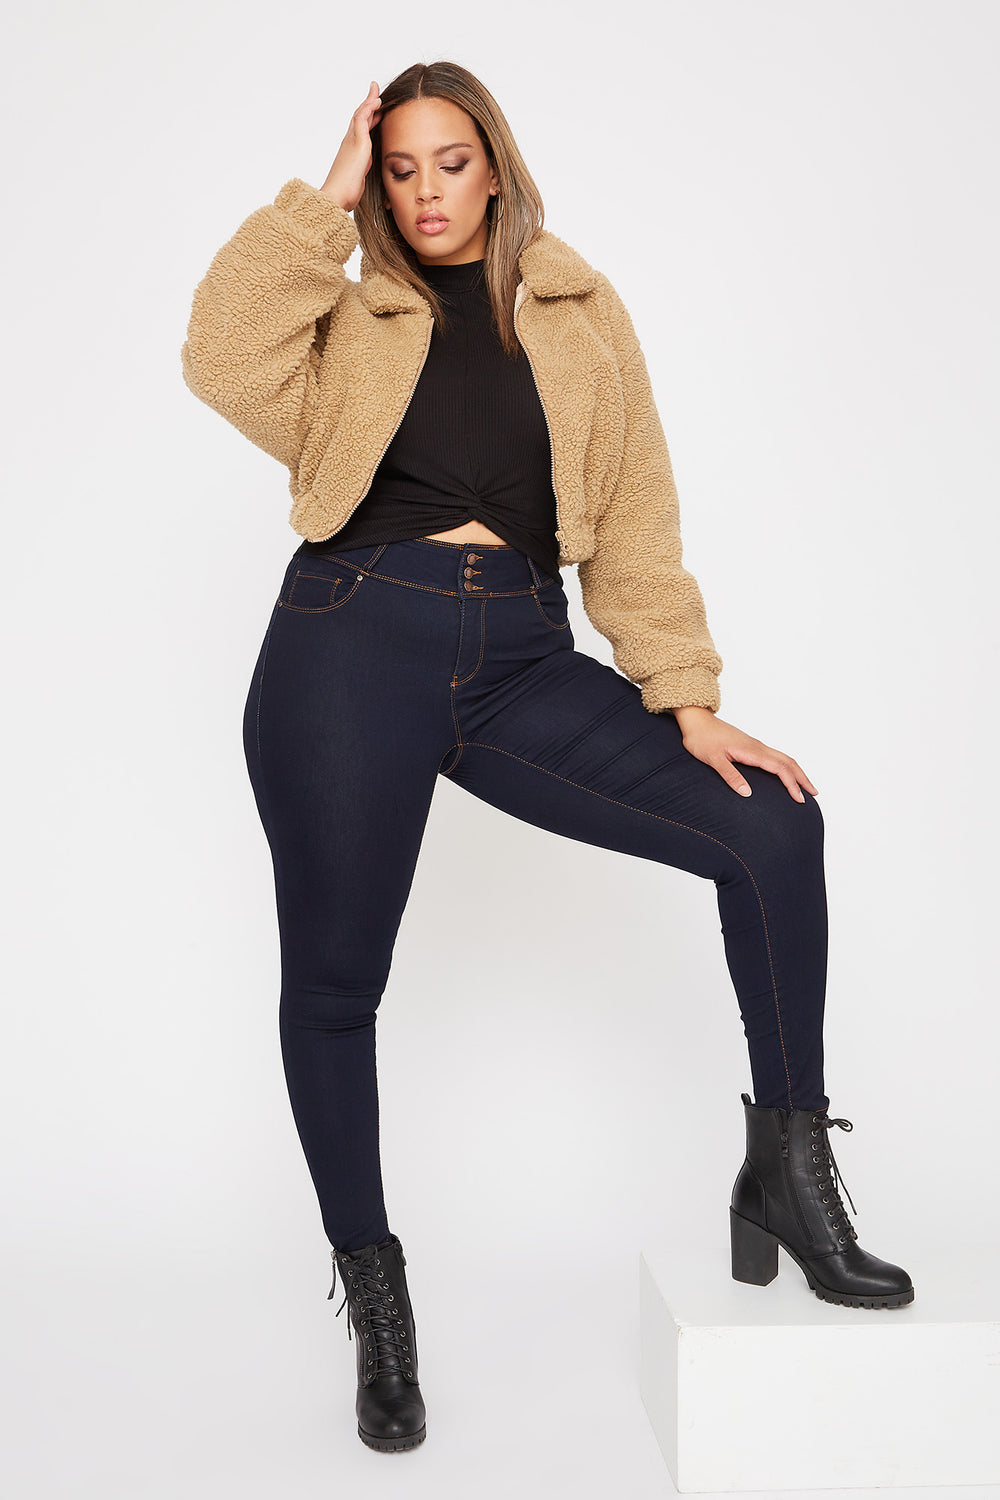 Plus Size Butt, I Love You 3-Tier High-Rise Push-Up Skinny Jean Dark Blue